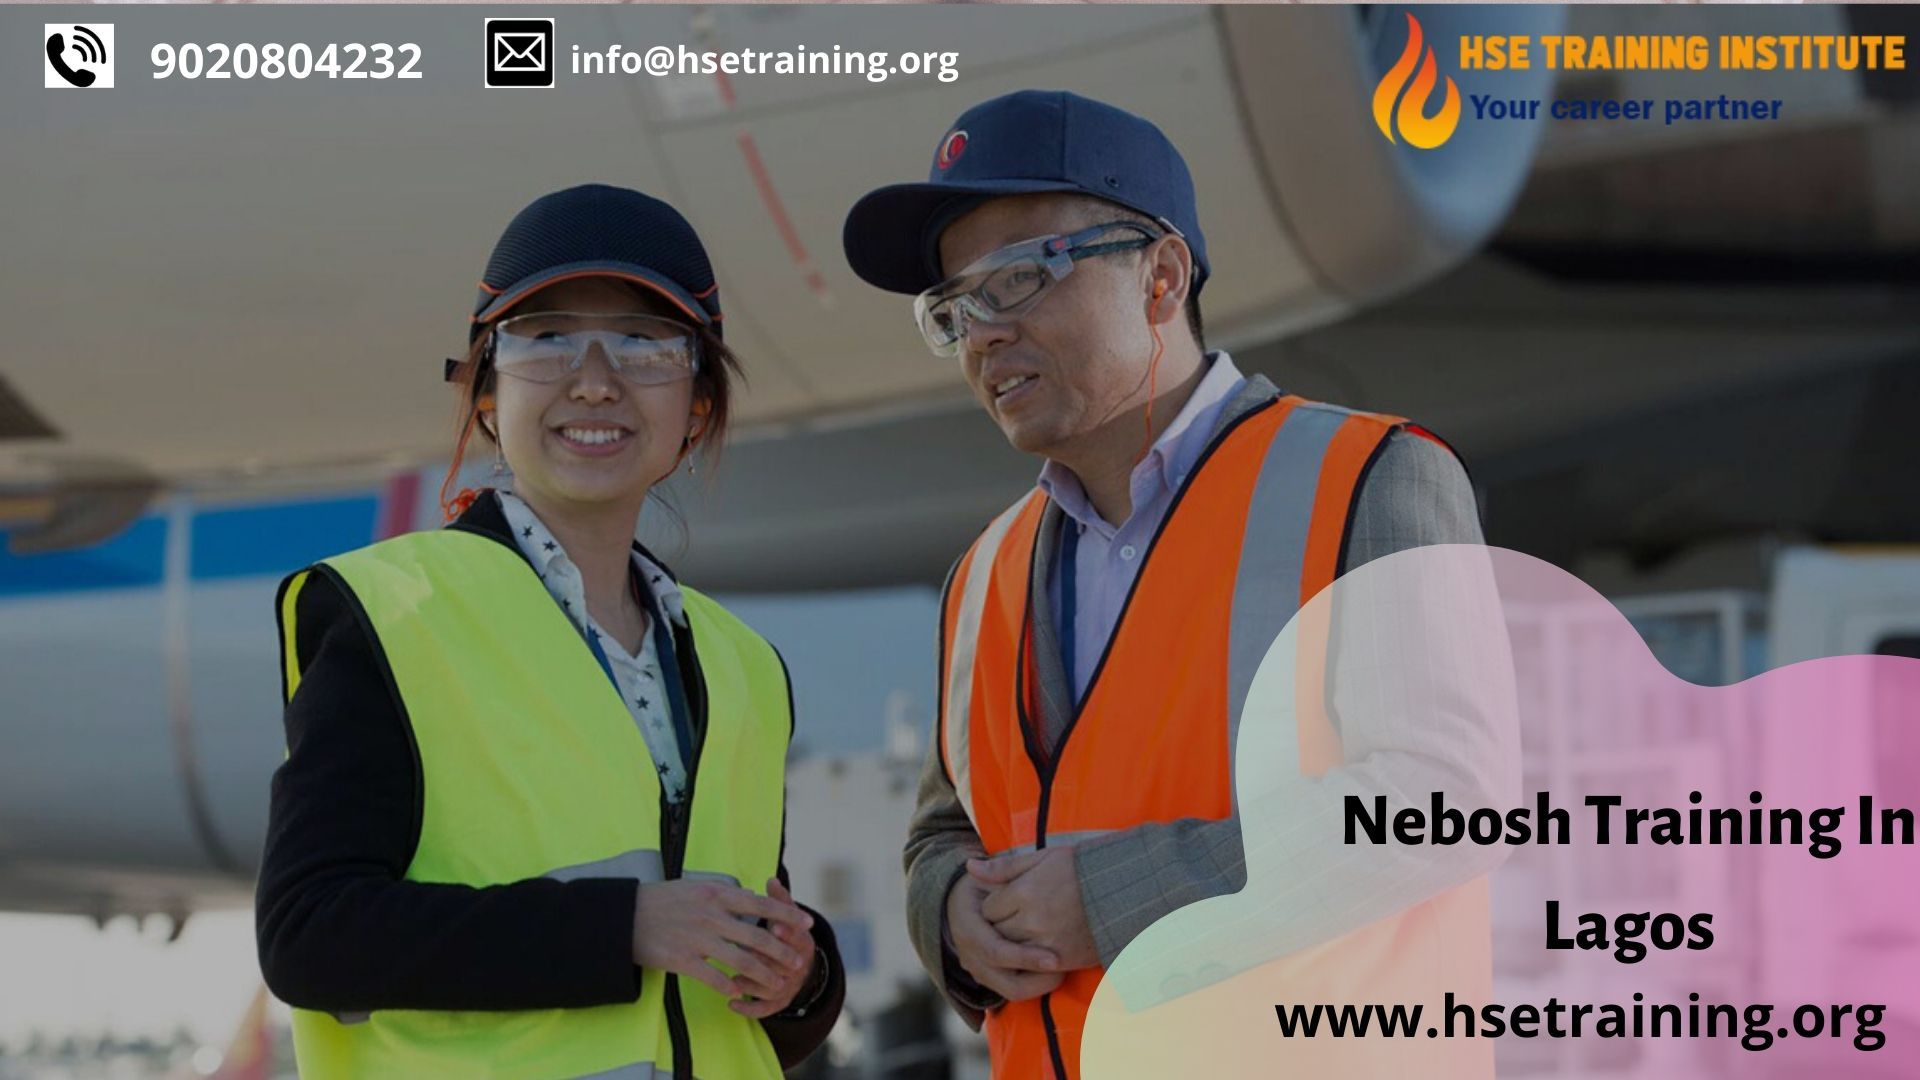 The Benefits Of Nebosh Training In Lagos For Employers